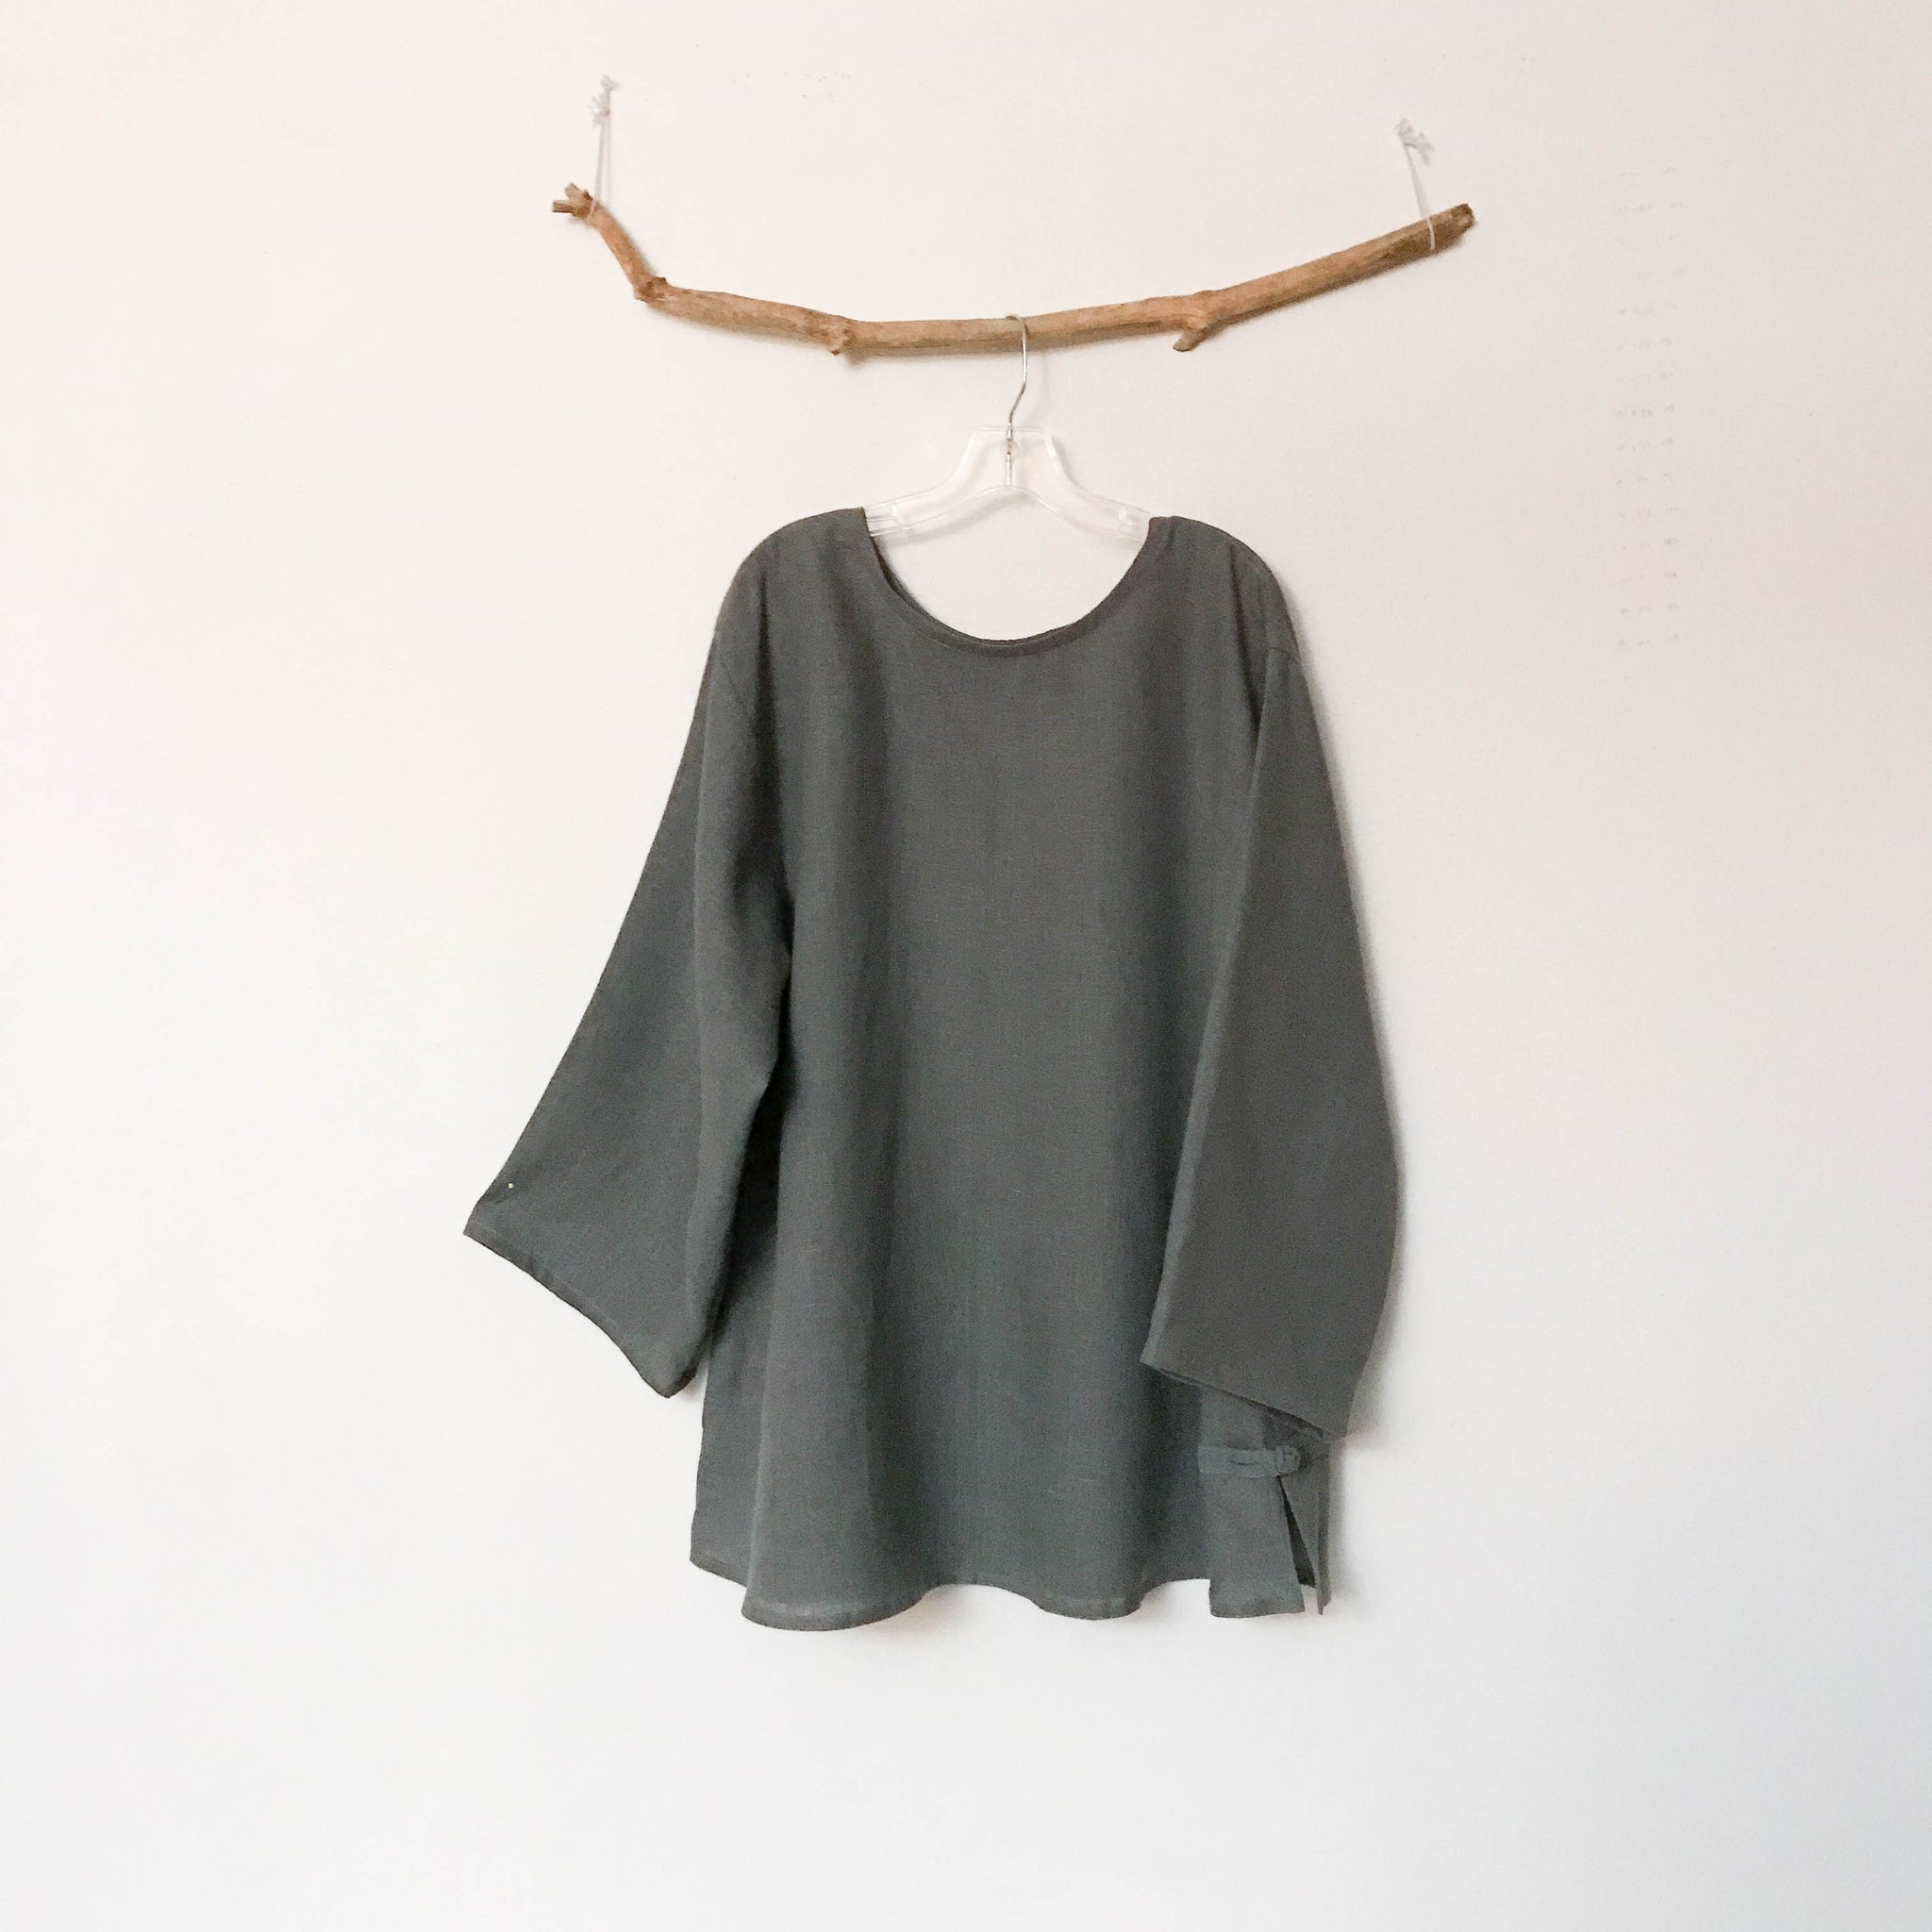 custom linen Asian style blouse with rounded neckline - linen clothing by anny